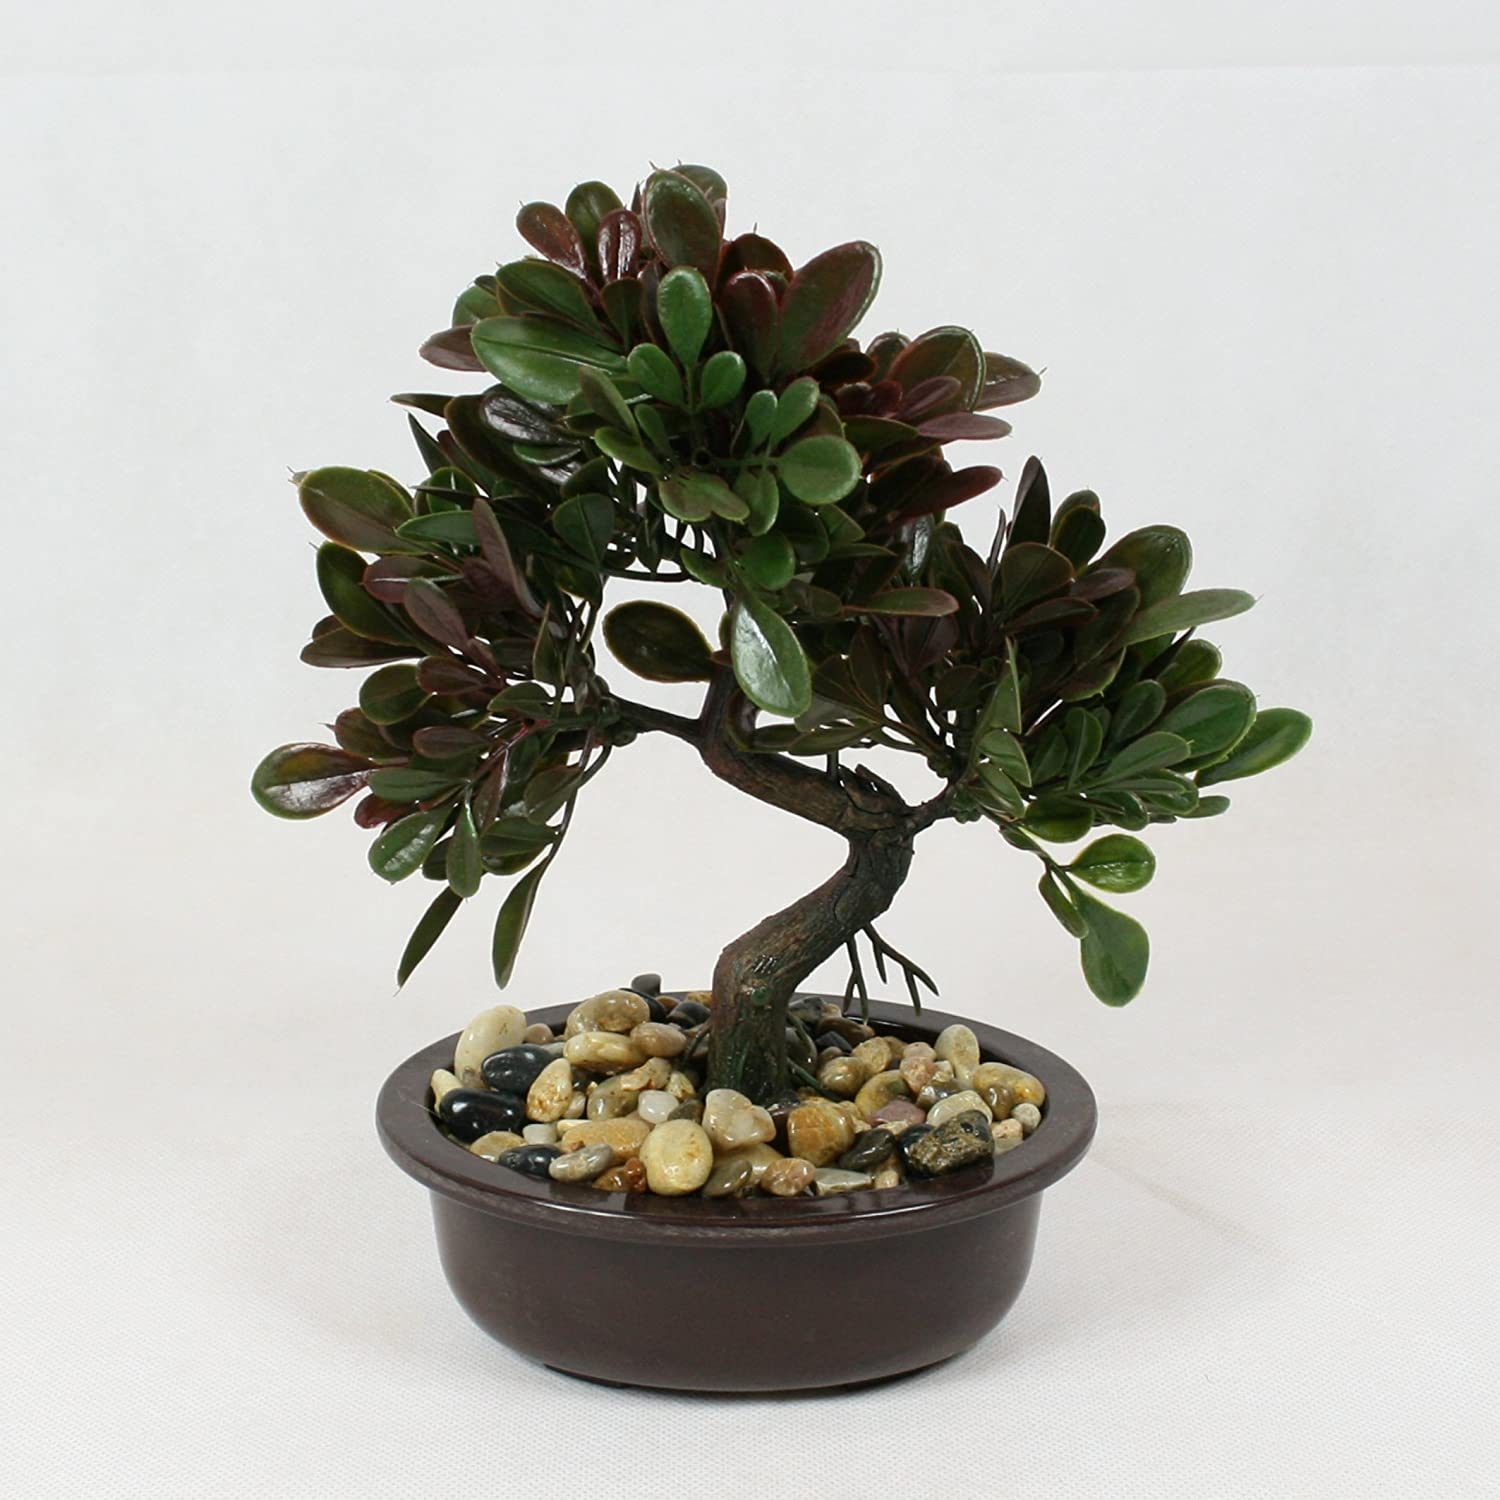 Bonsai Tree in Oval Pot, Artificial Plant Decoration for Office and Home 25 cm - Green & Brown TopGifts